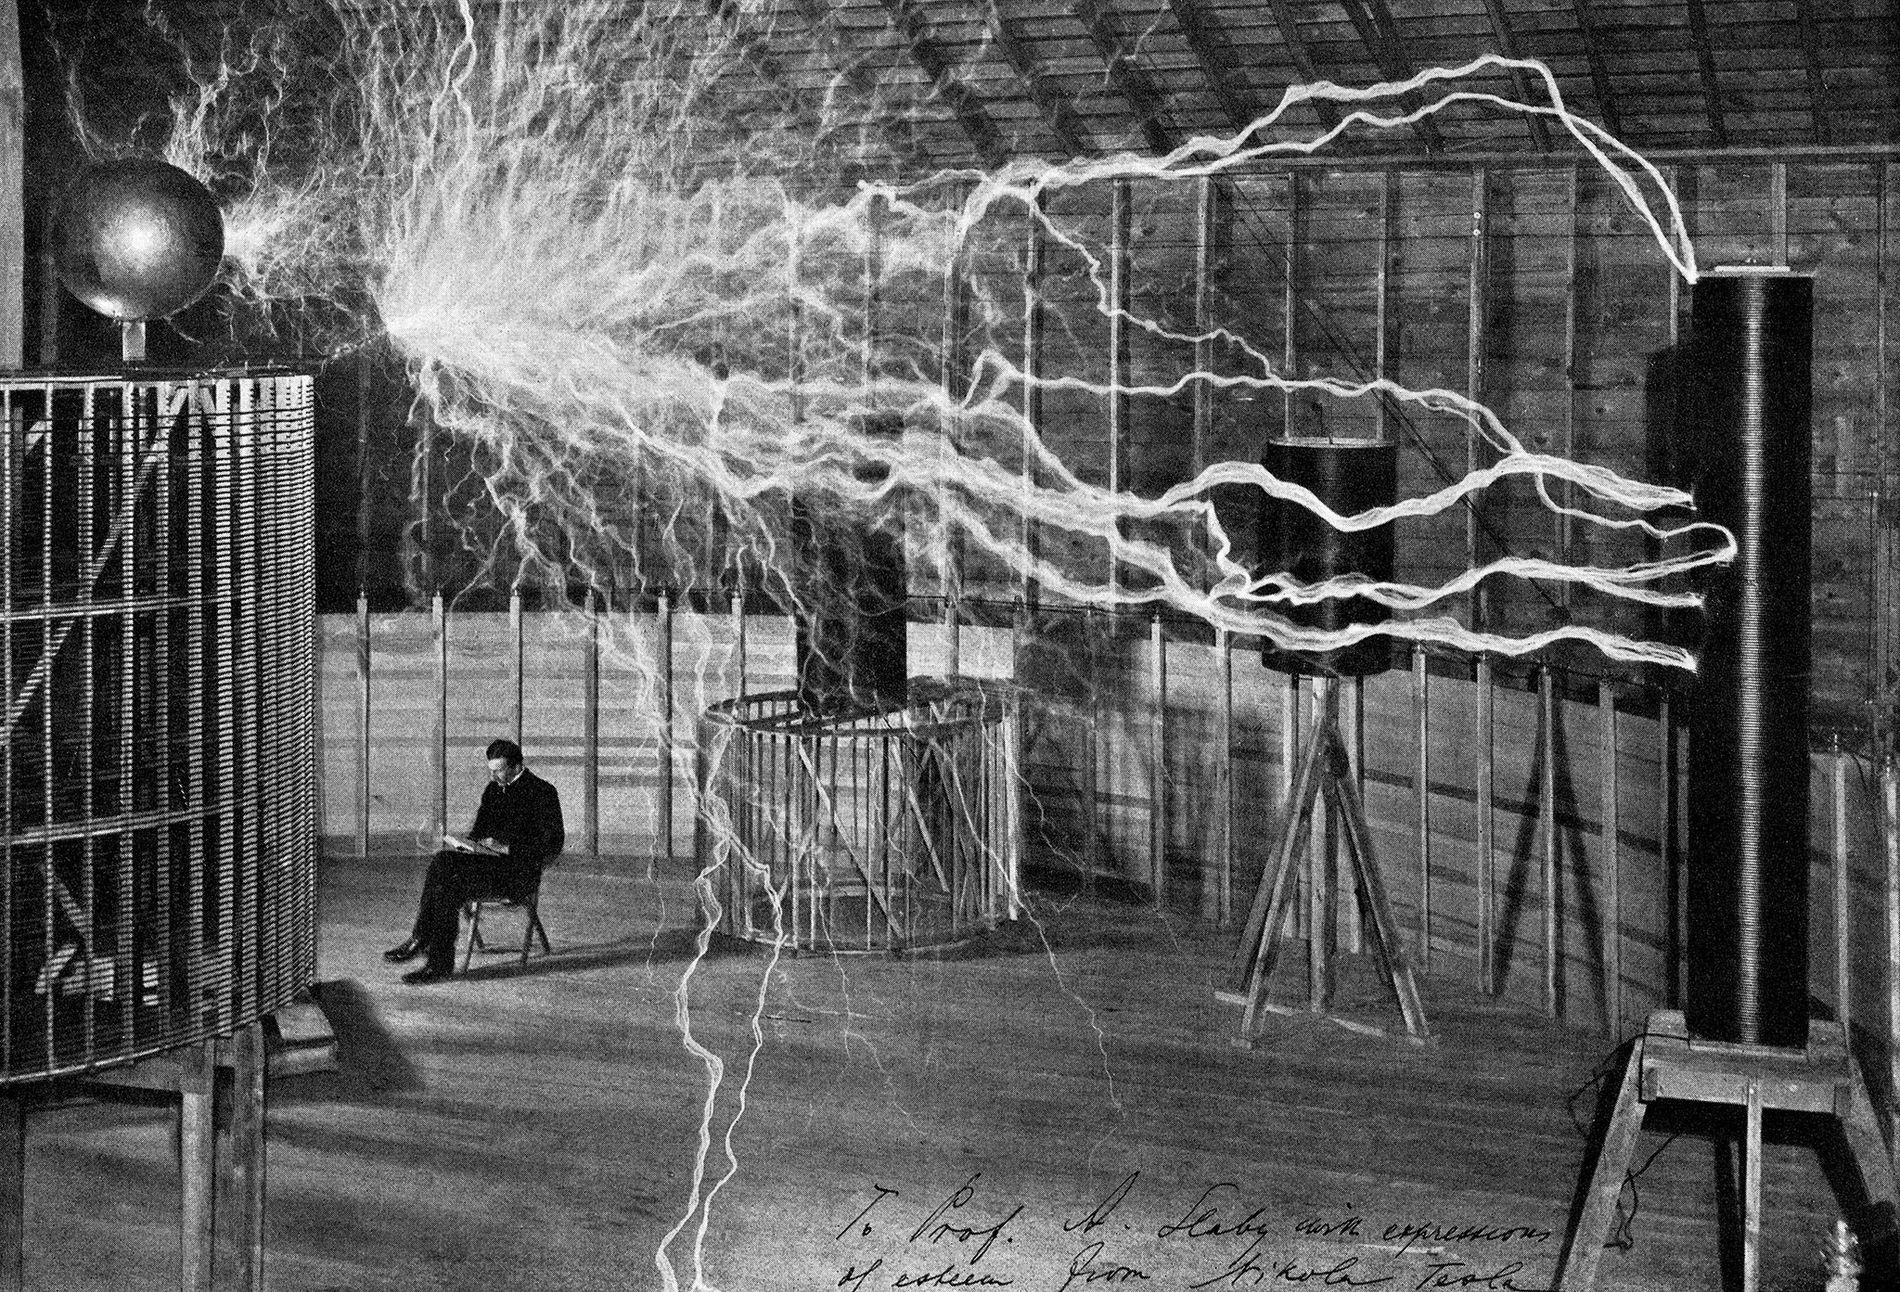 Nikola Tesla calmly takes notes while a man-made electrical storm erupts overhead in his laboratory in ...